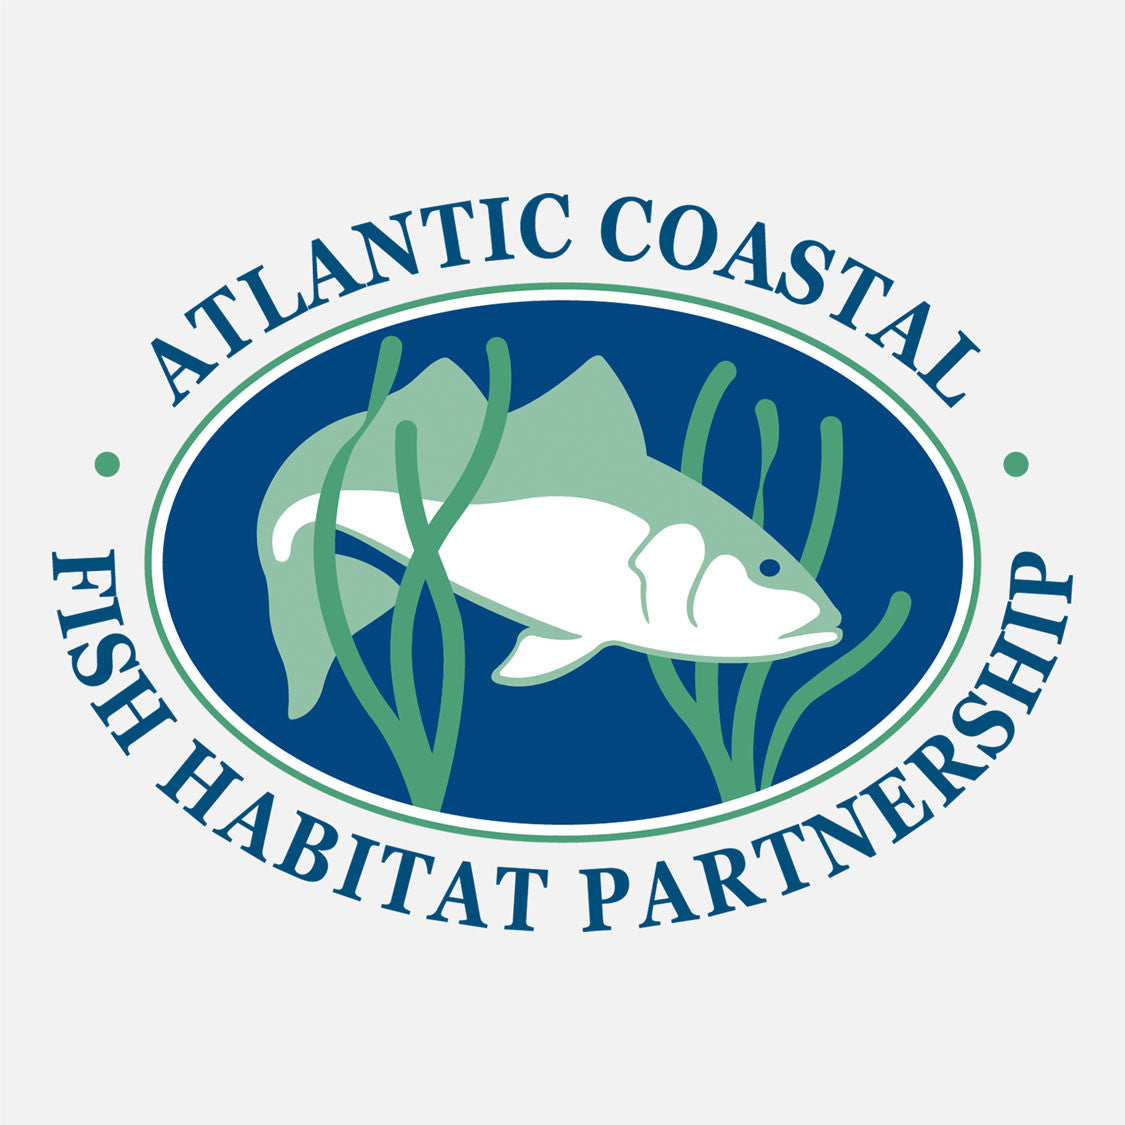 A coast-wide collaborative effort to accelerate the conservation of habitat for native Atlantic coastal, estuarine-dependent, and diadromous fishes. The logo is a graphic fish in seagrass habitat.